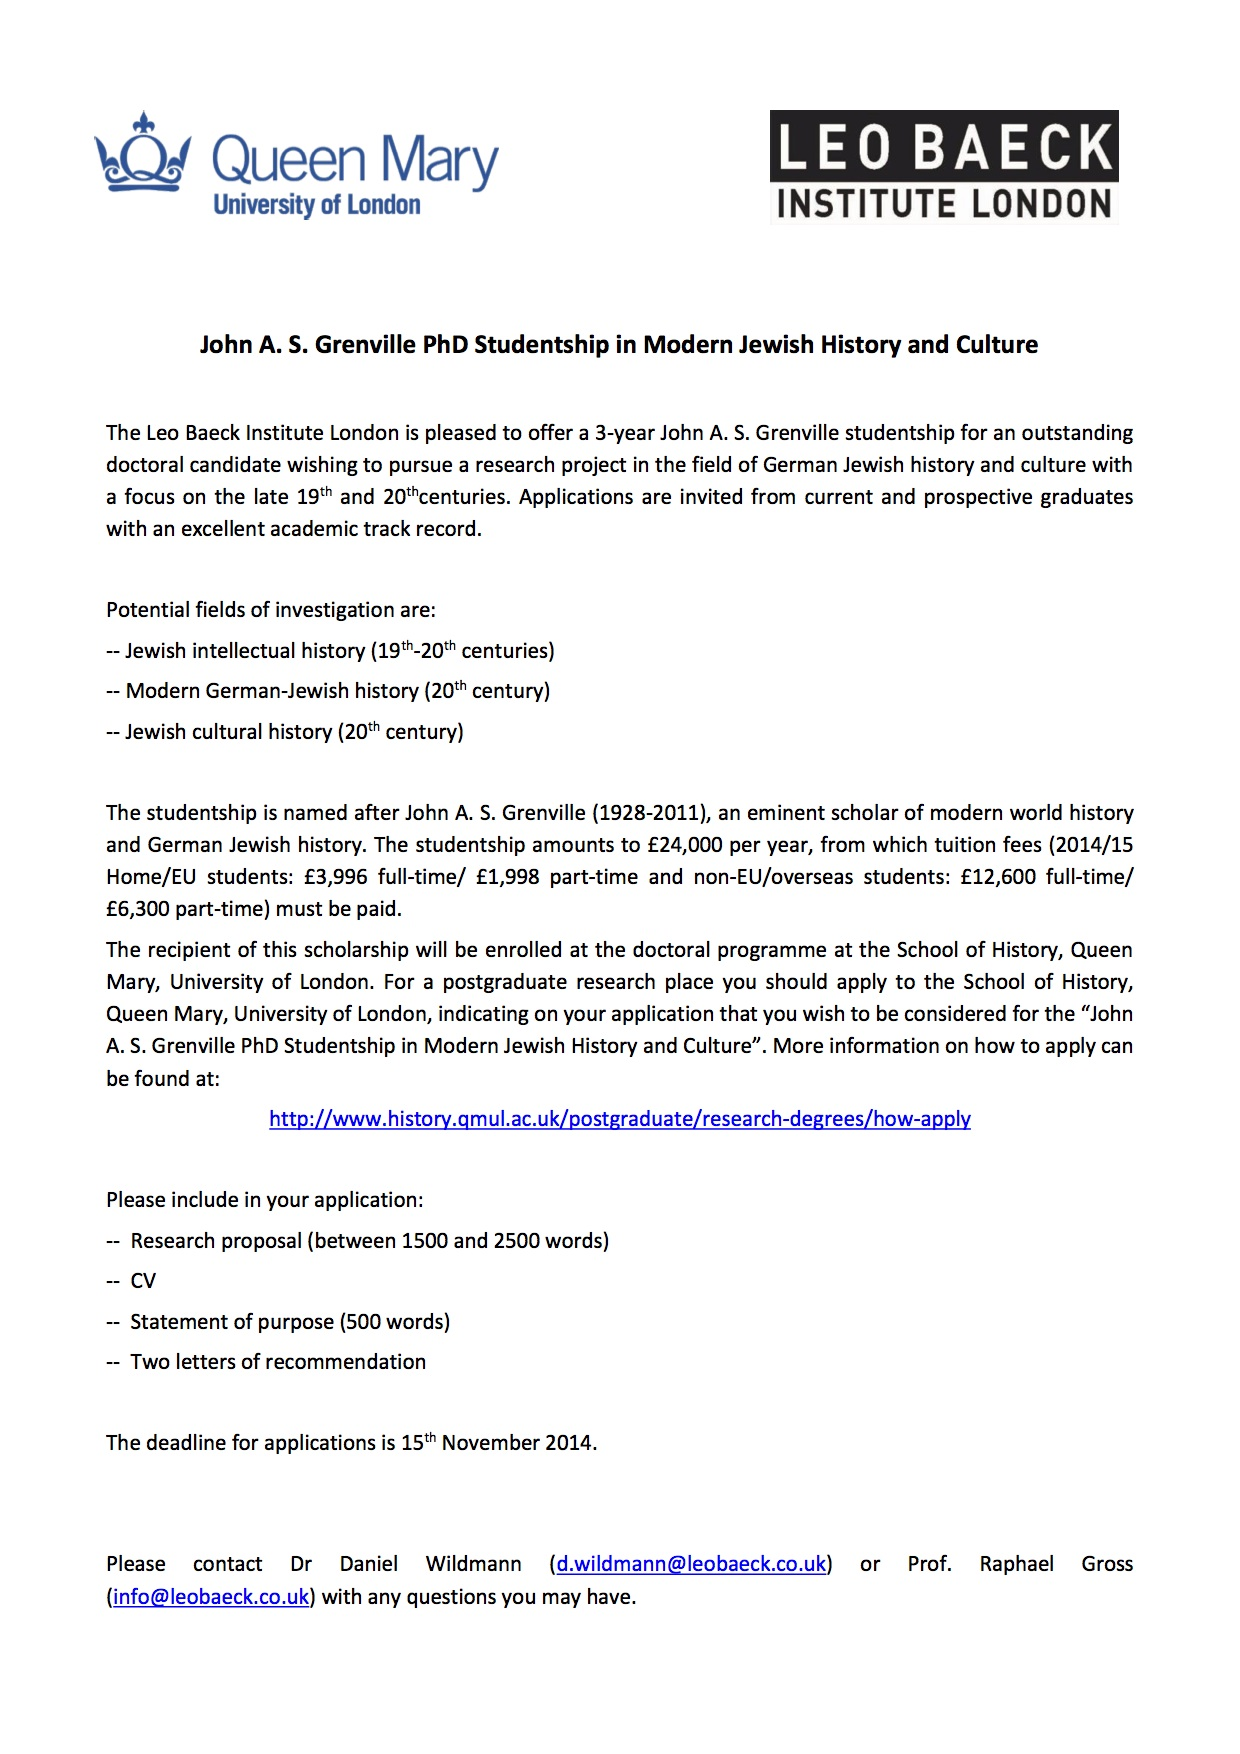 John A S Grenville PhD Studentship in Modern Jewish History and Culture Leo Baeck Institute